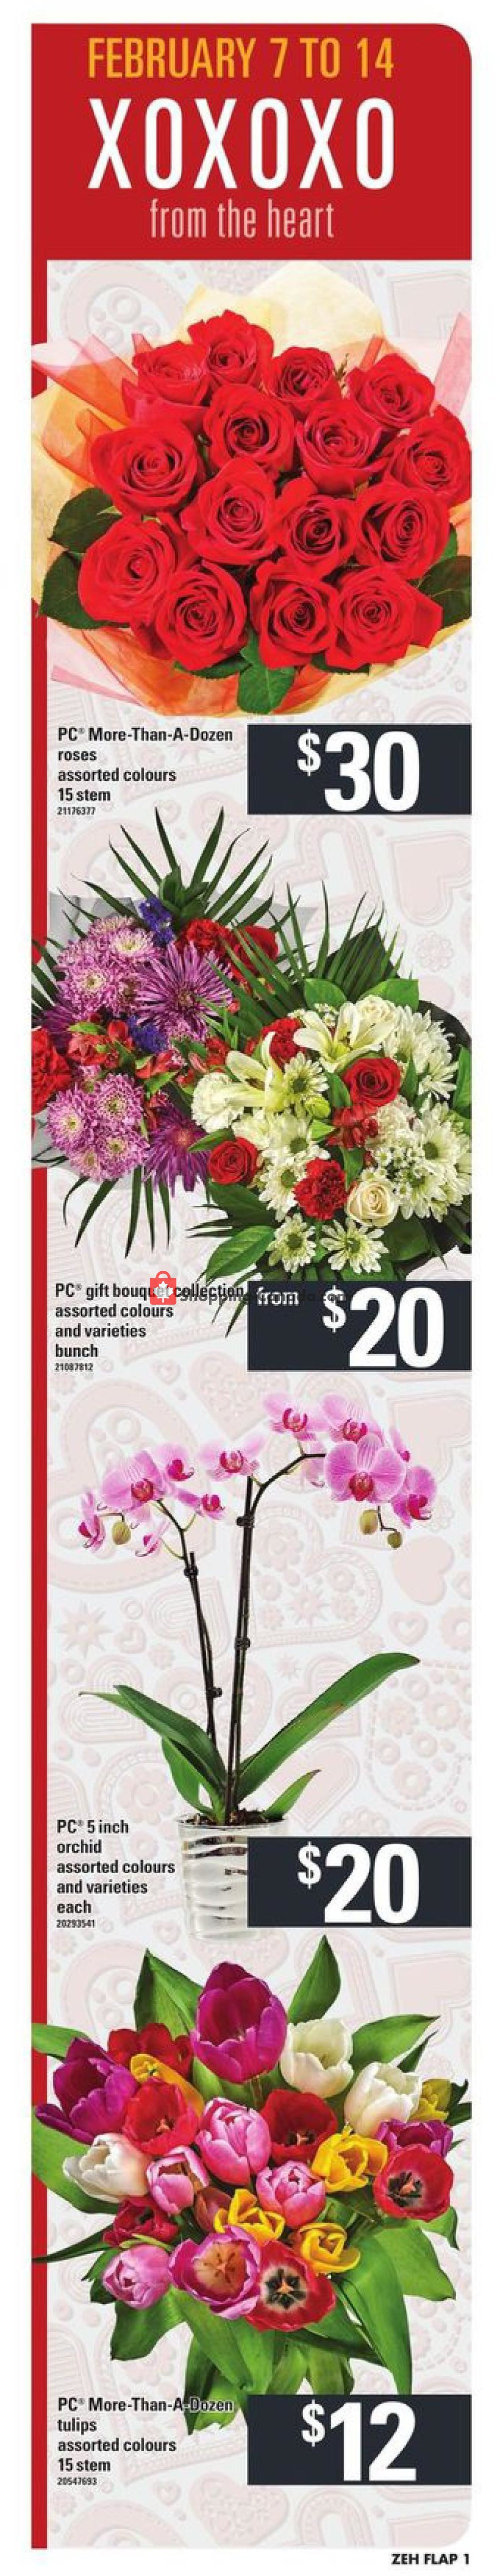 Zehrs Canada Flyer Special Offer February 7 February 13 2019 Shopping Canada